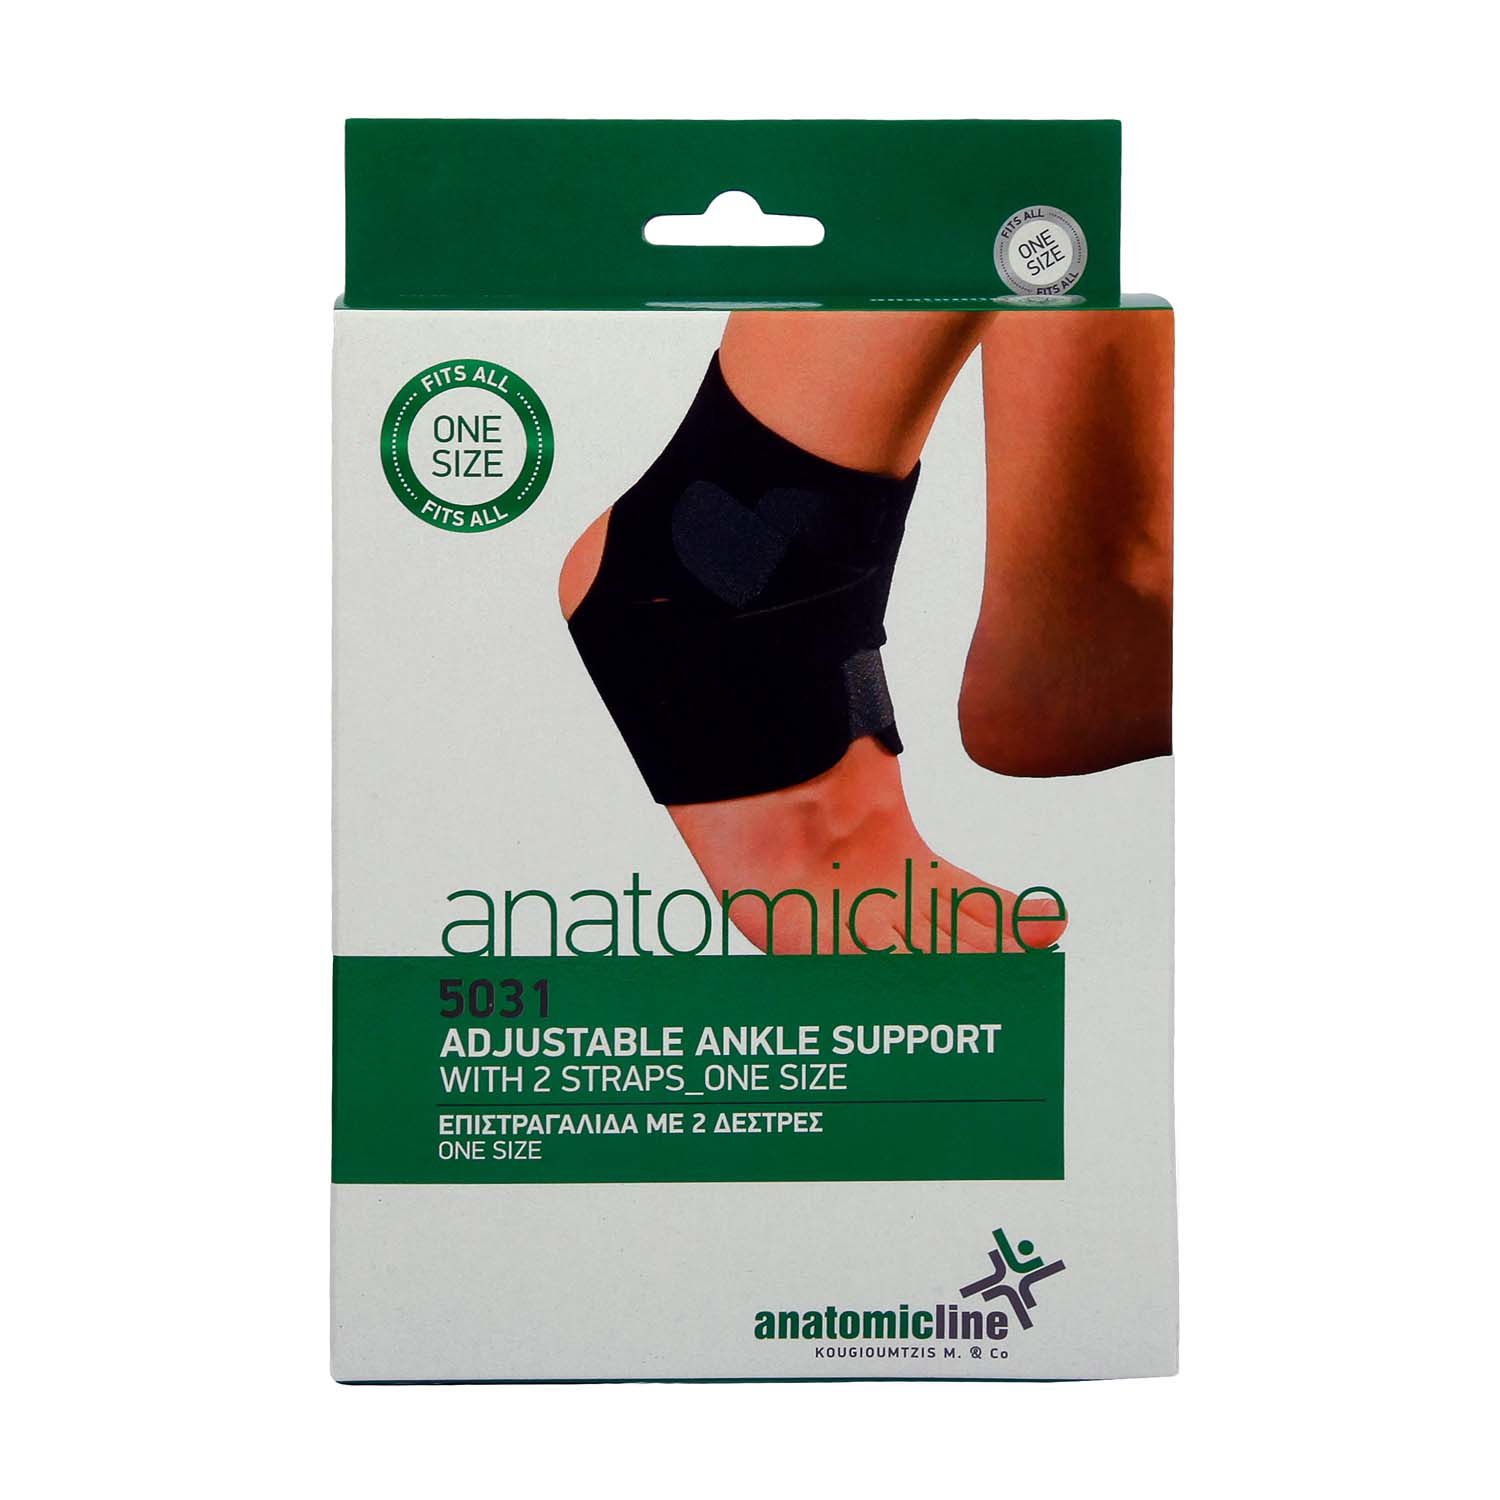 Ankle support with 2 straps - Neoprene